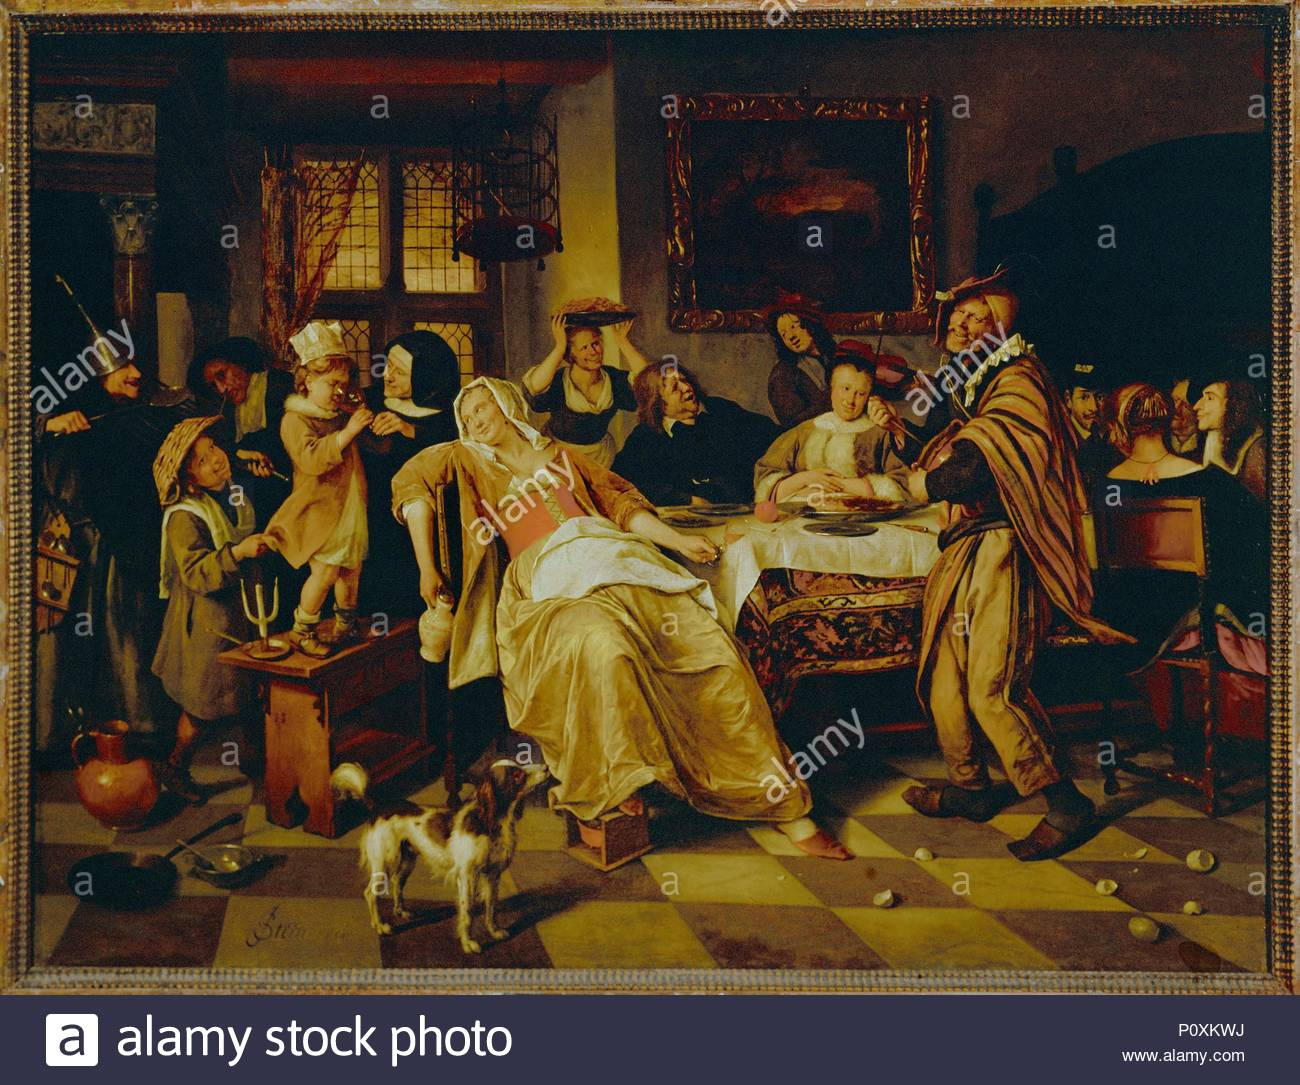 Feast of the Twelfth Night cake,1660. Author: Jan Steen (1626-1679).  Location: Staatliche Kunstsammlungen, Kassel, Germany.